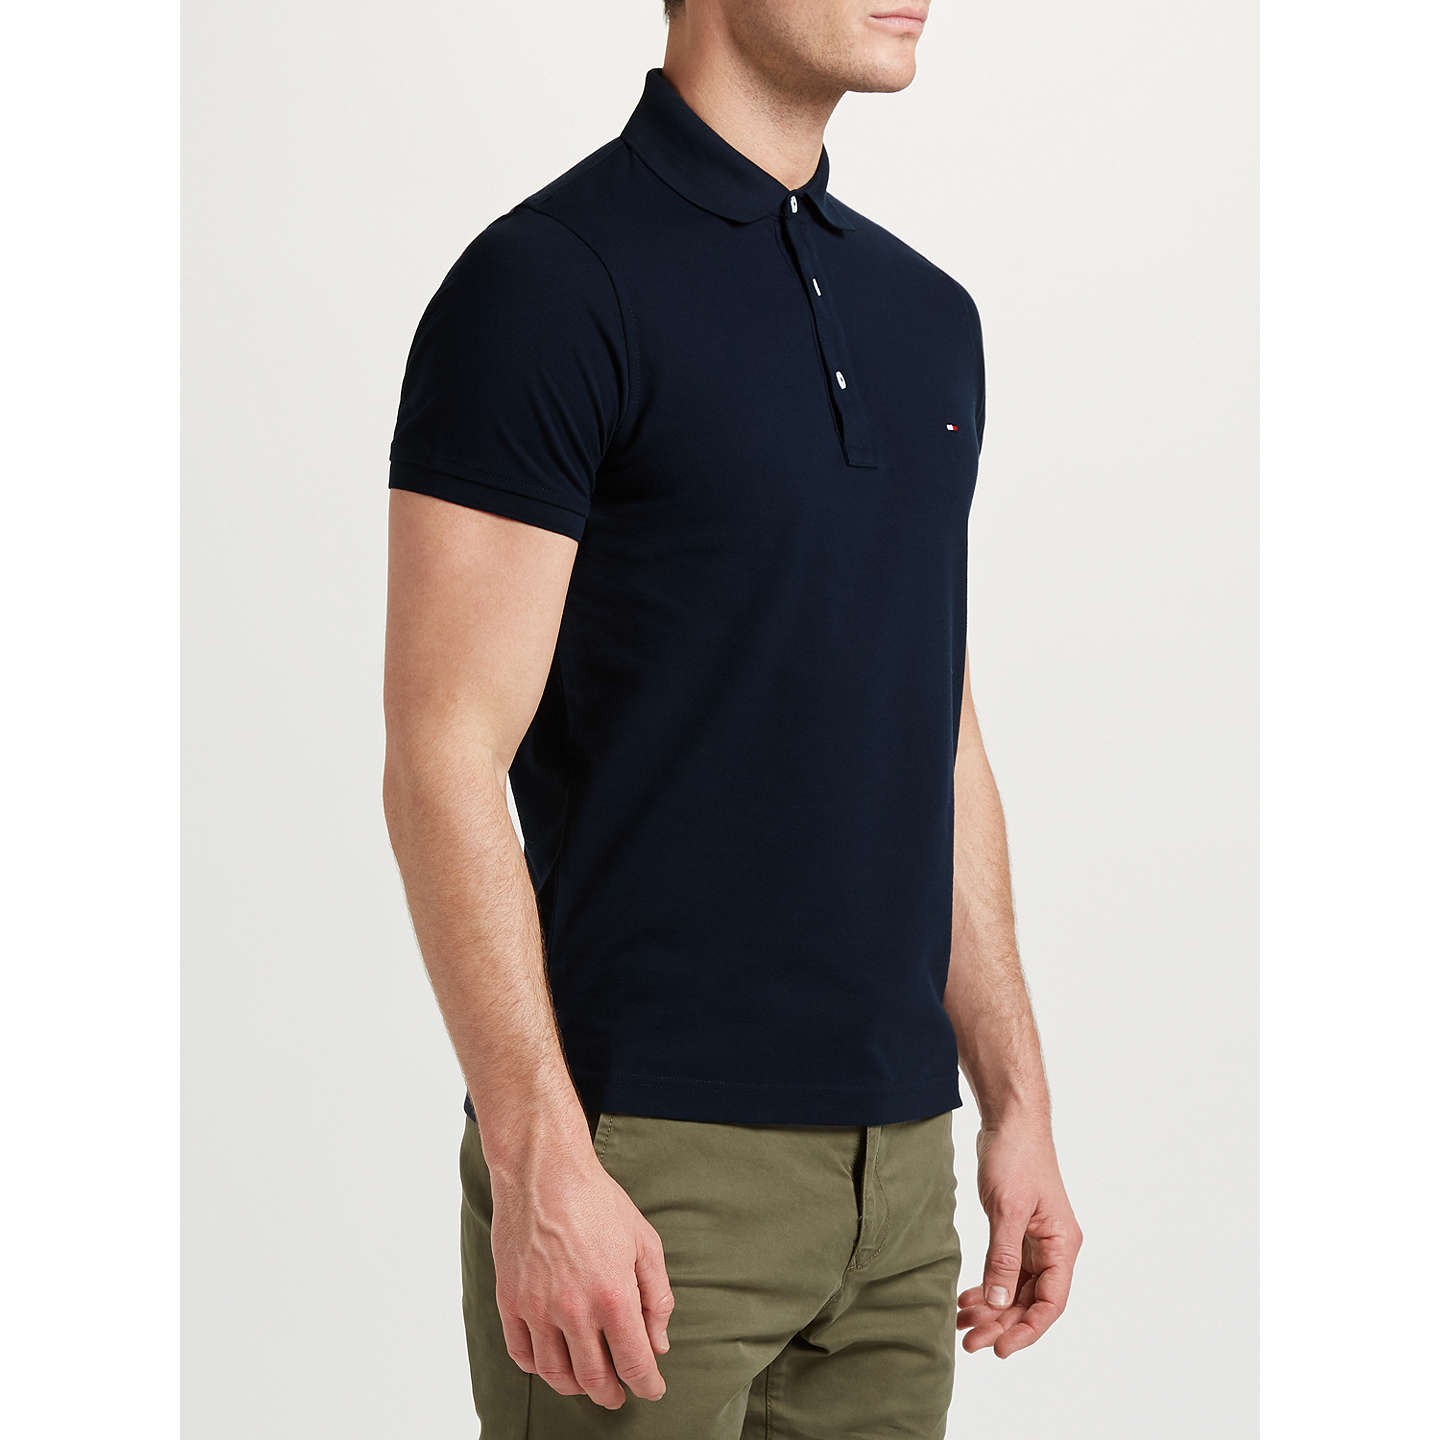 BuyTommy Hilfiger Slim Polo Shirt, Navy, S Online at johnlewis.com